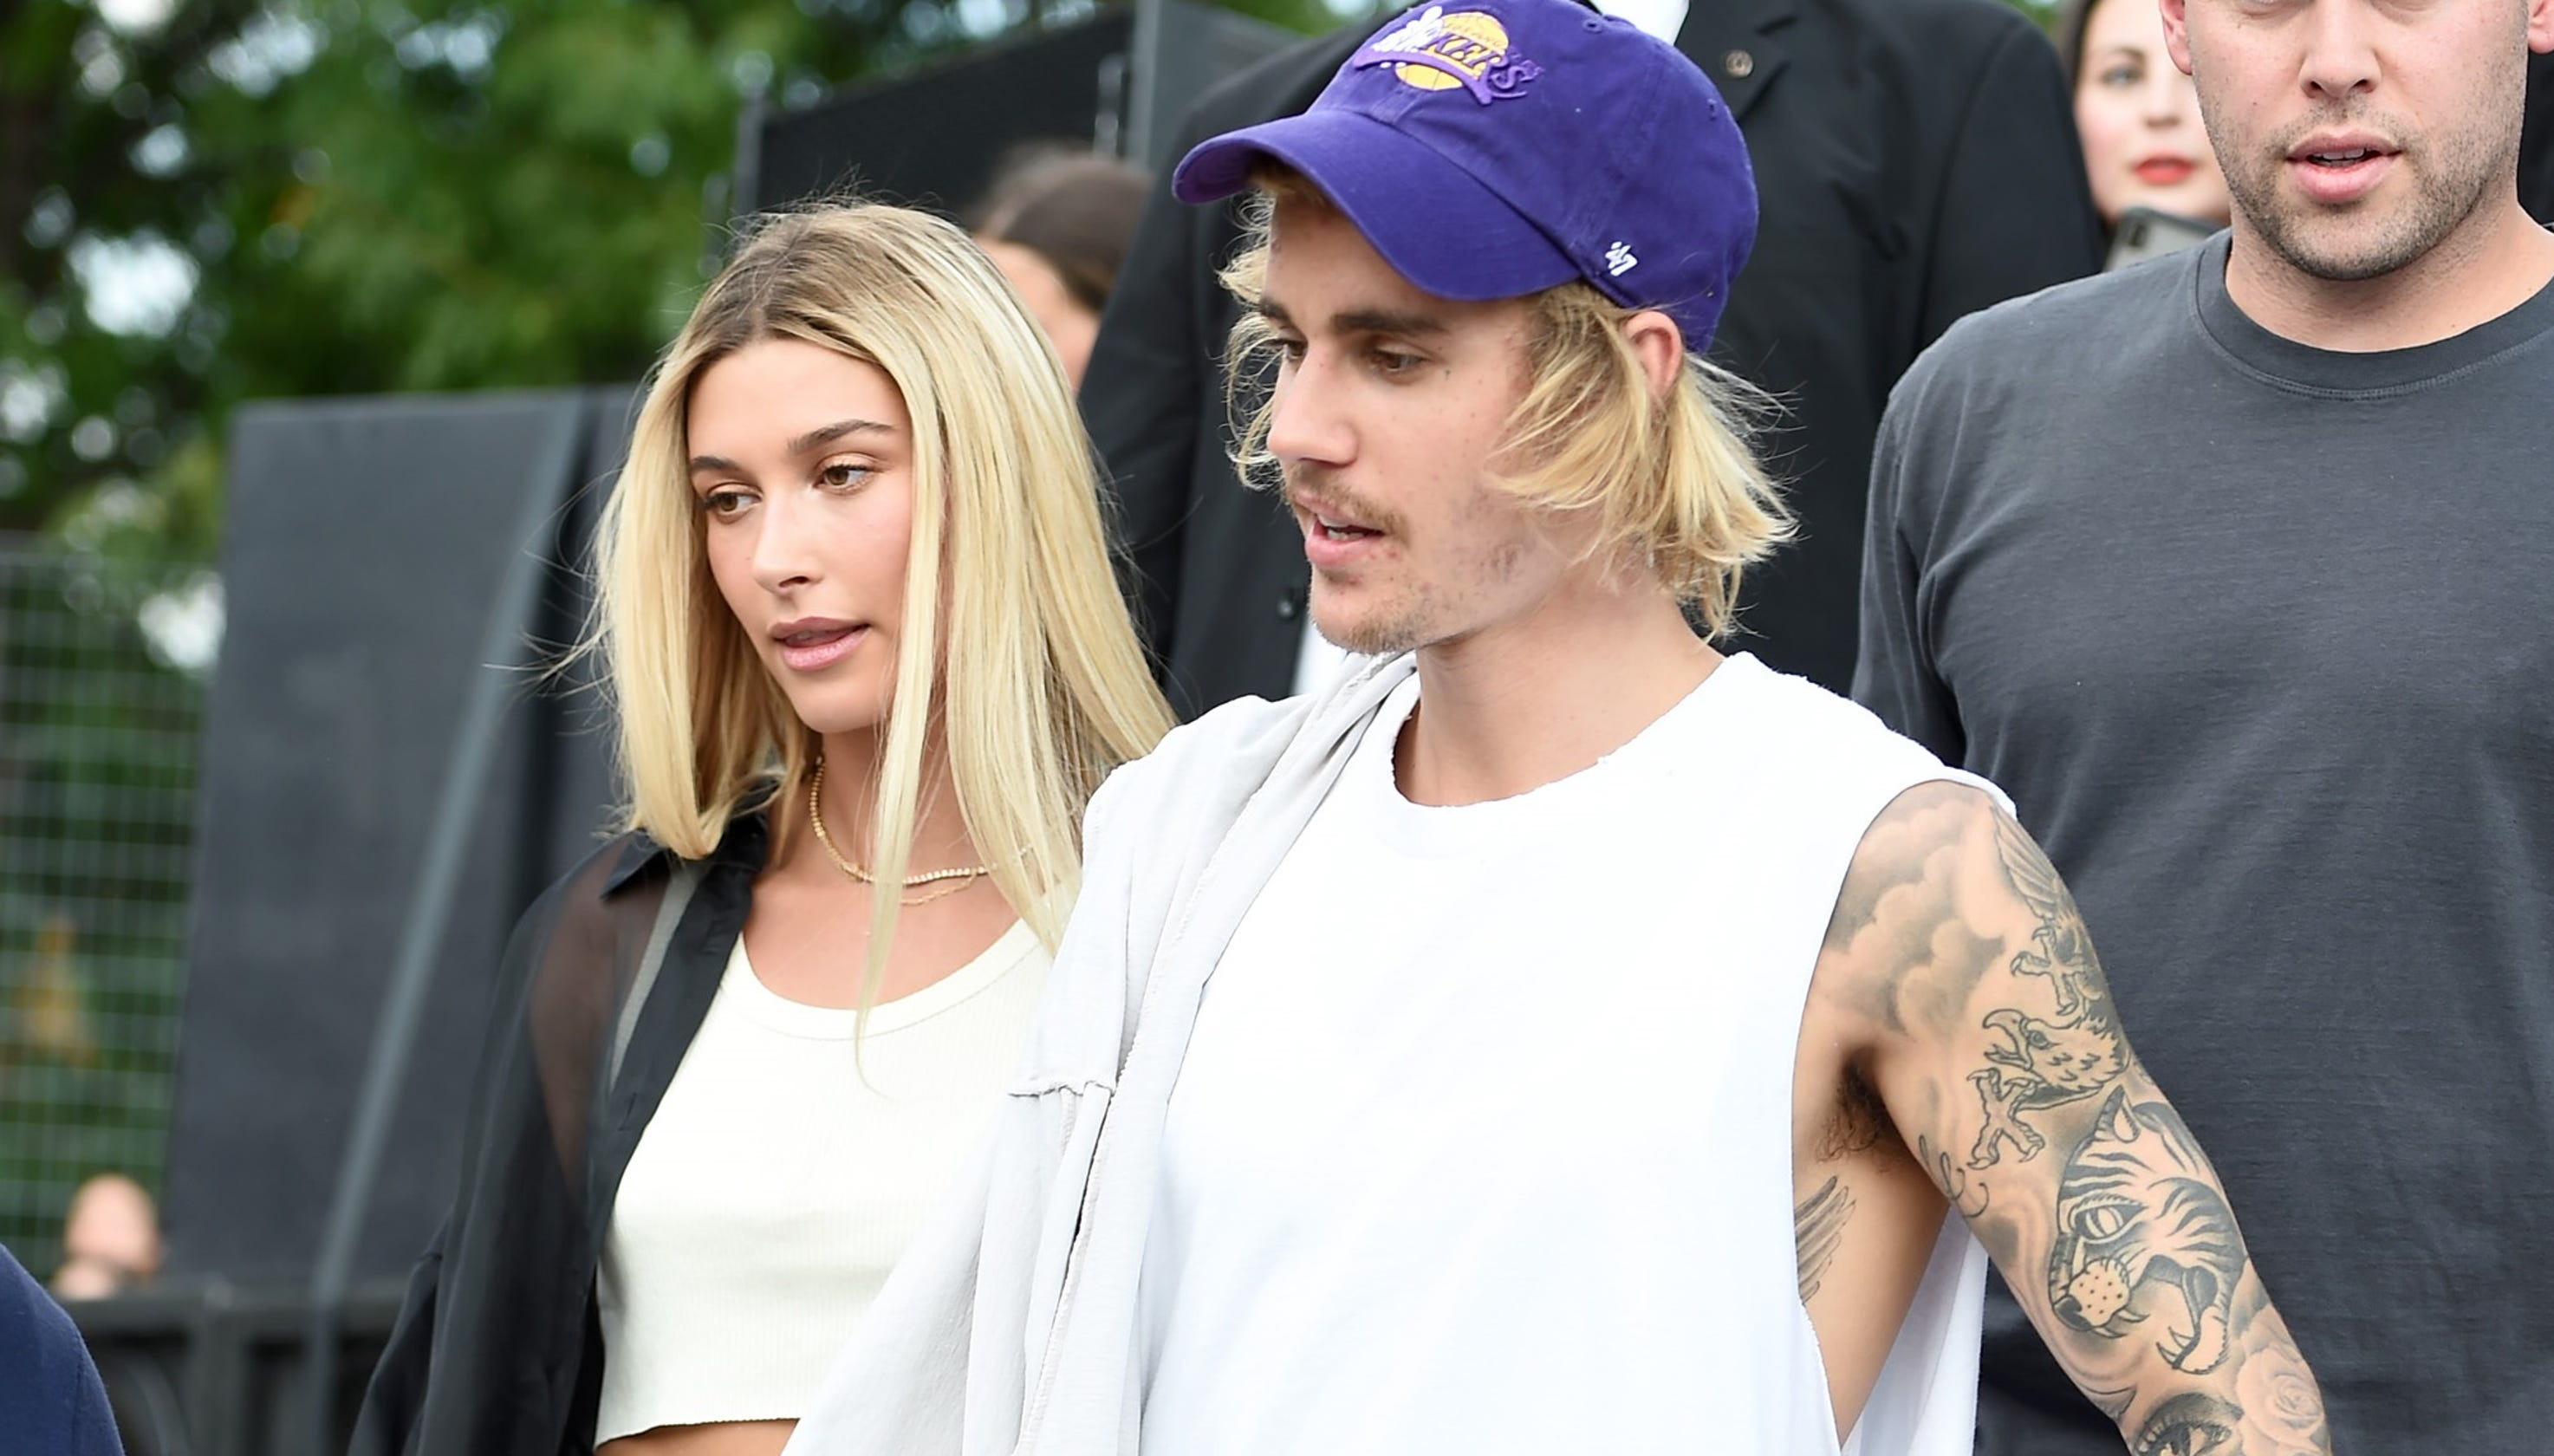 Hailey Baldwin Boyfriends Who Is Hailey Dating Now